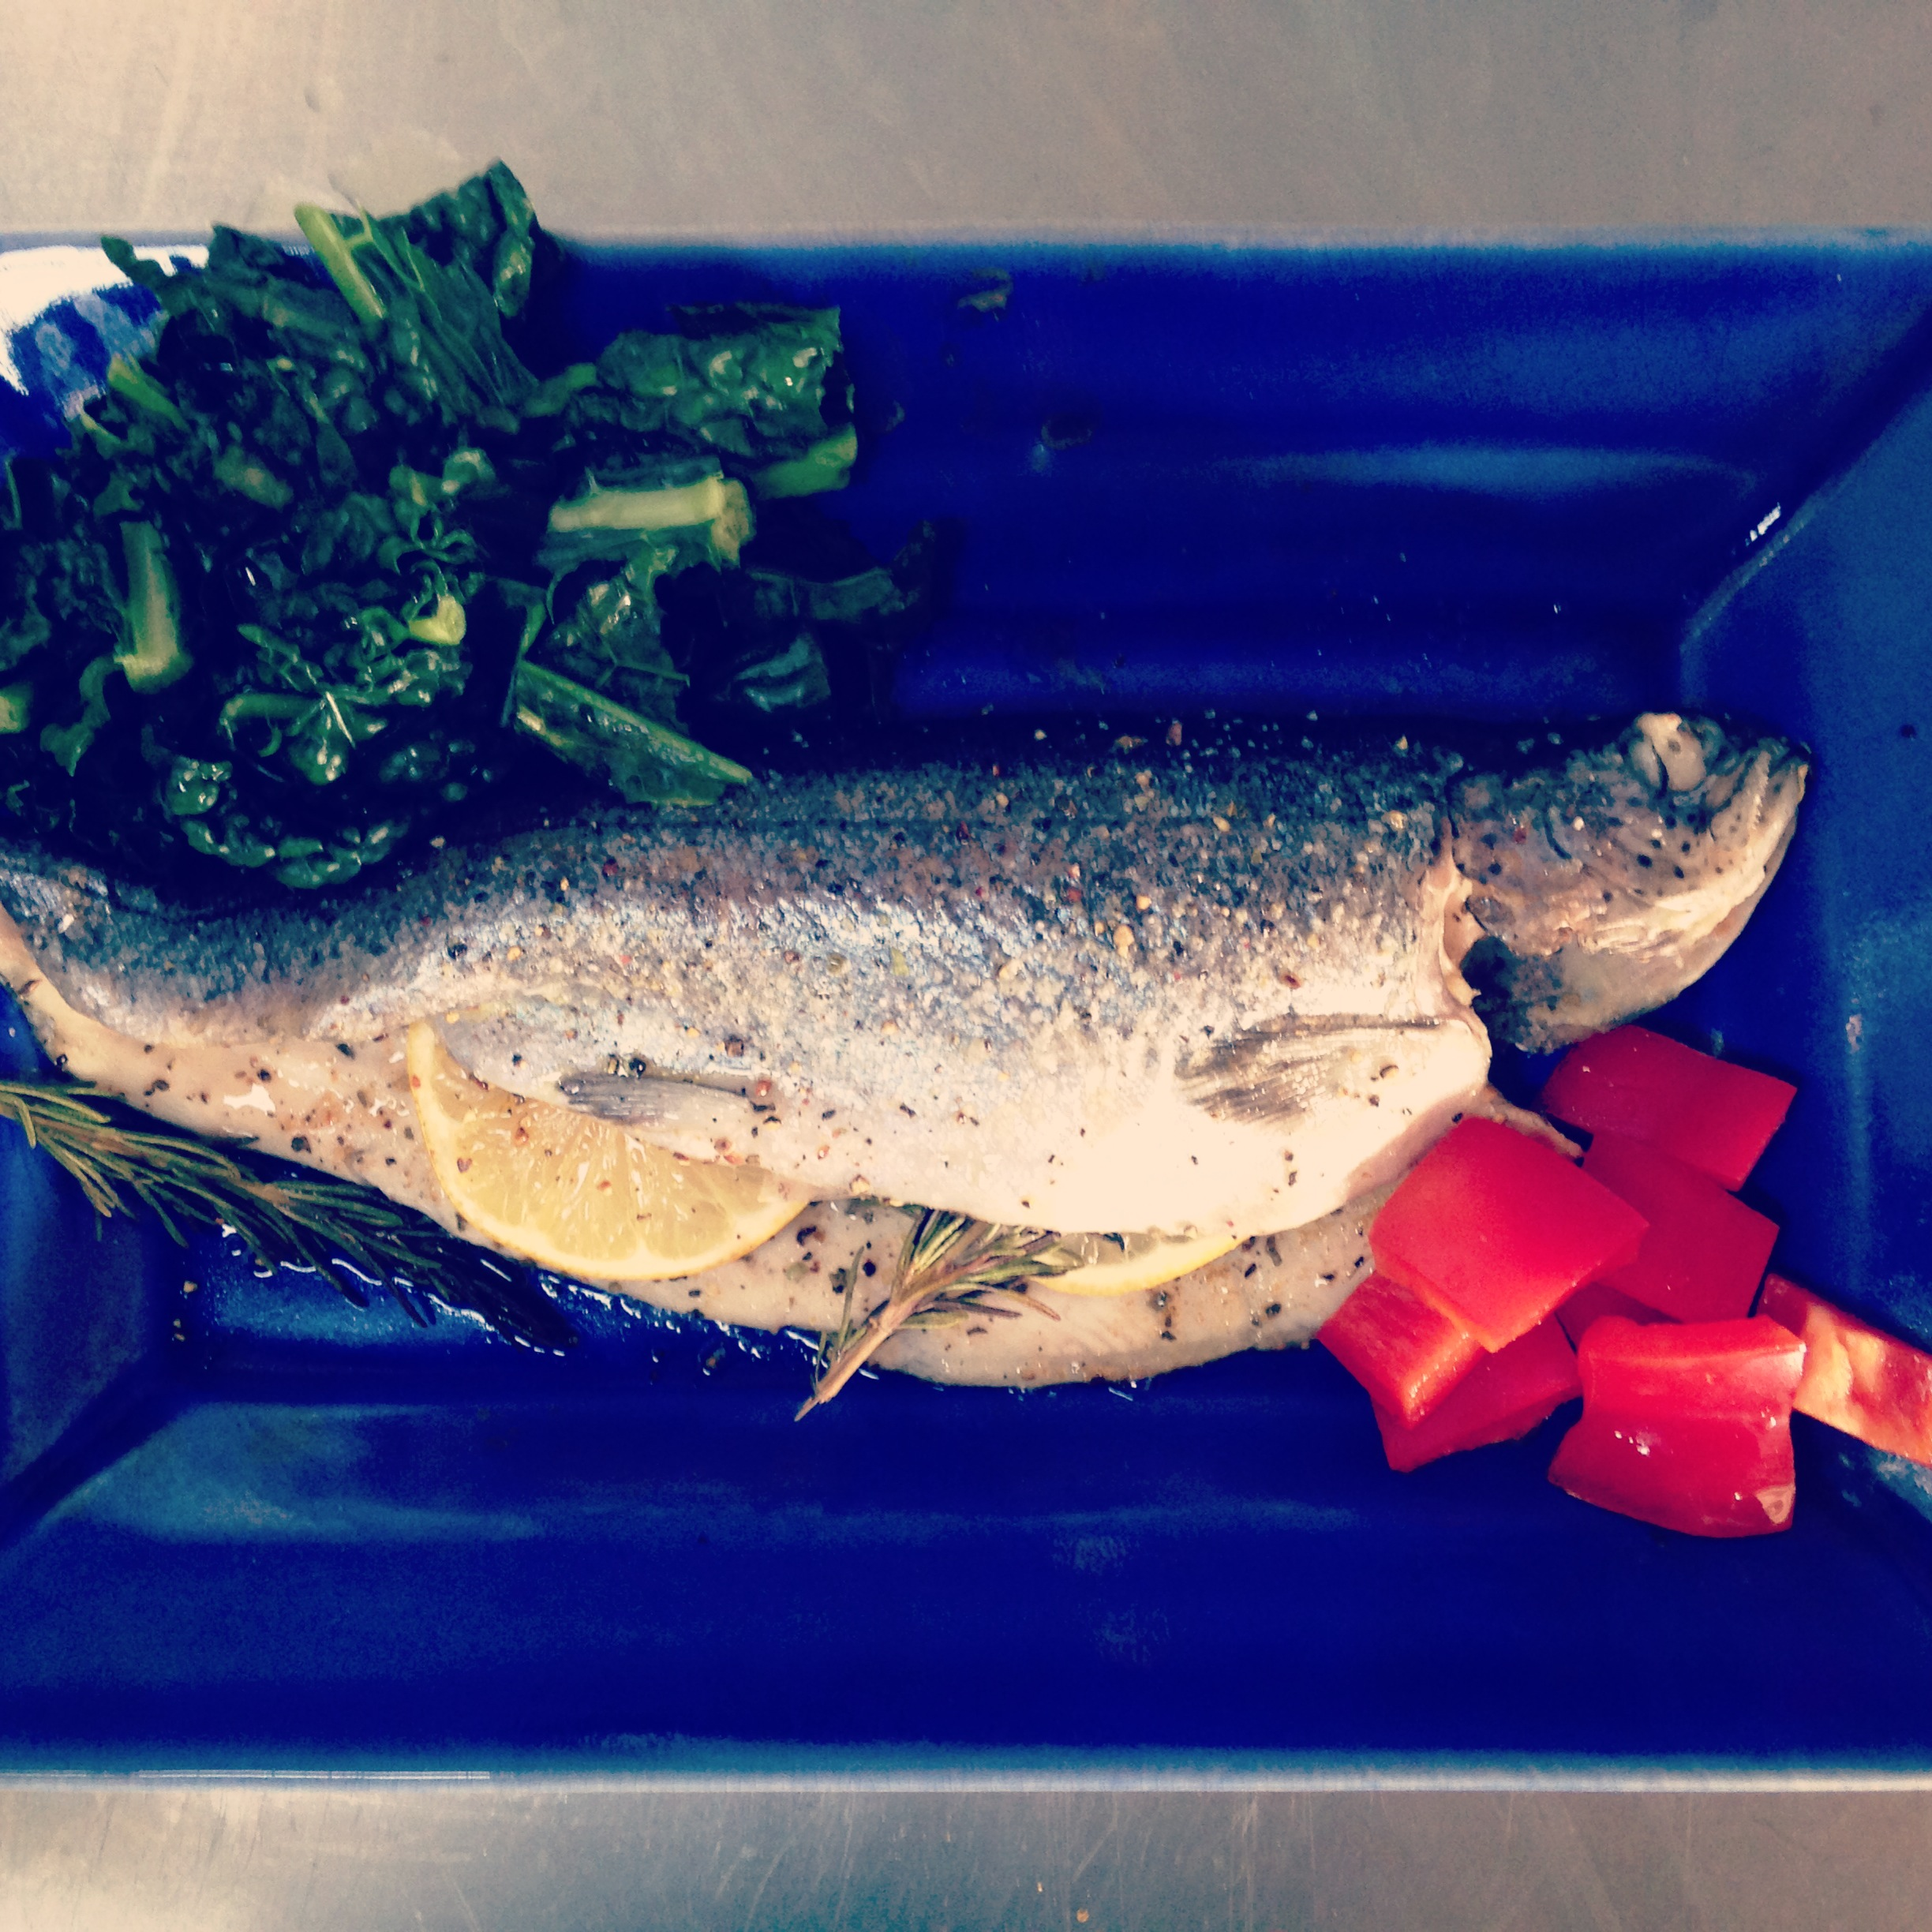 Grilled fish with kale and red bell pepper